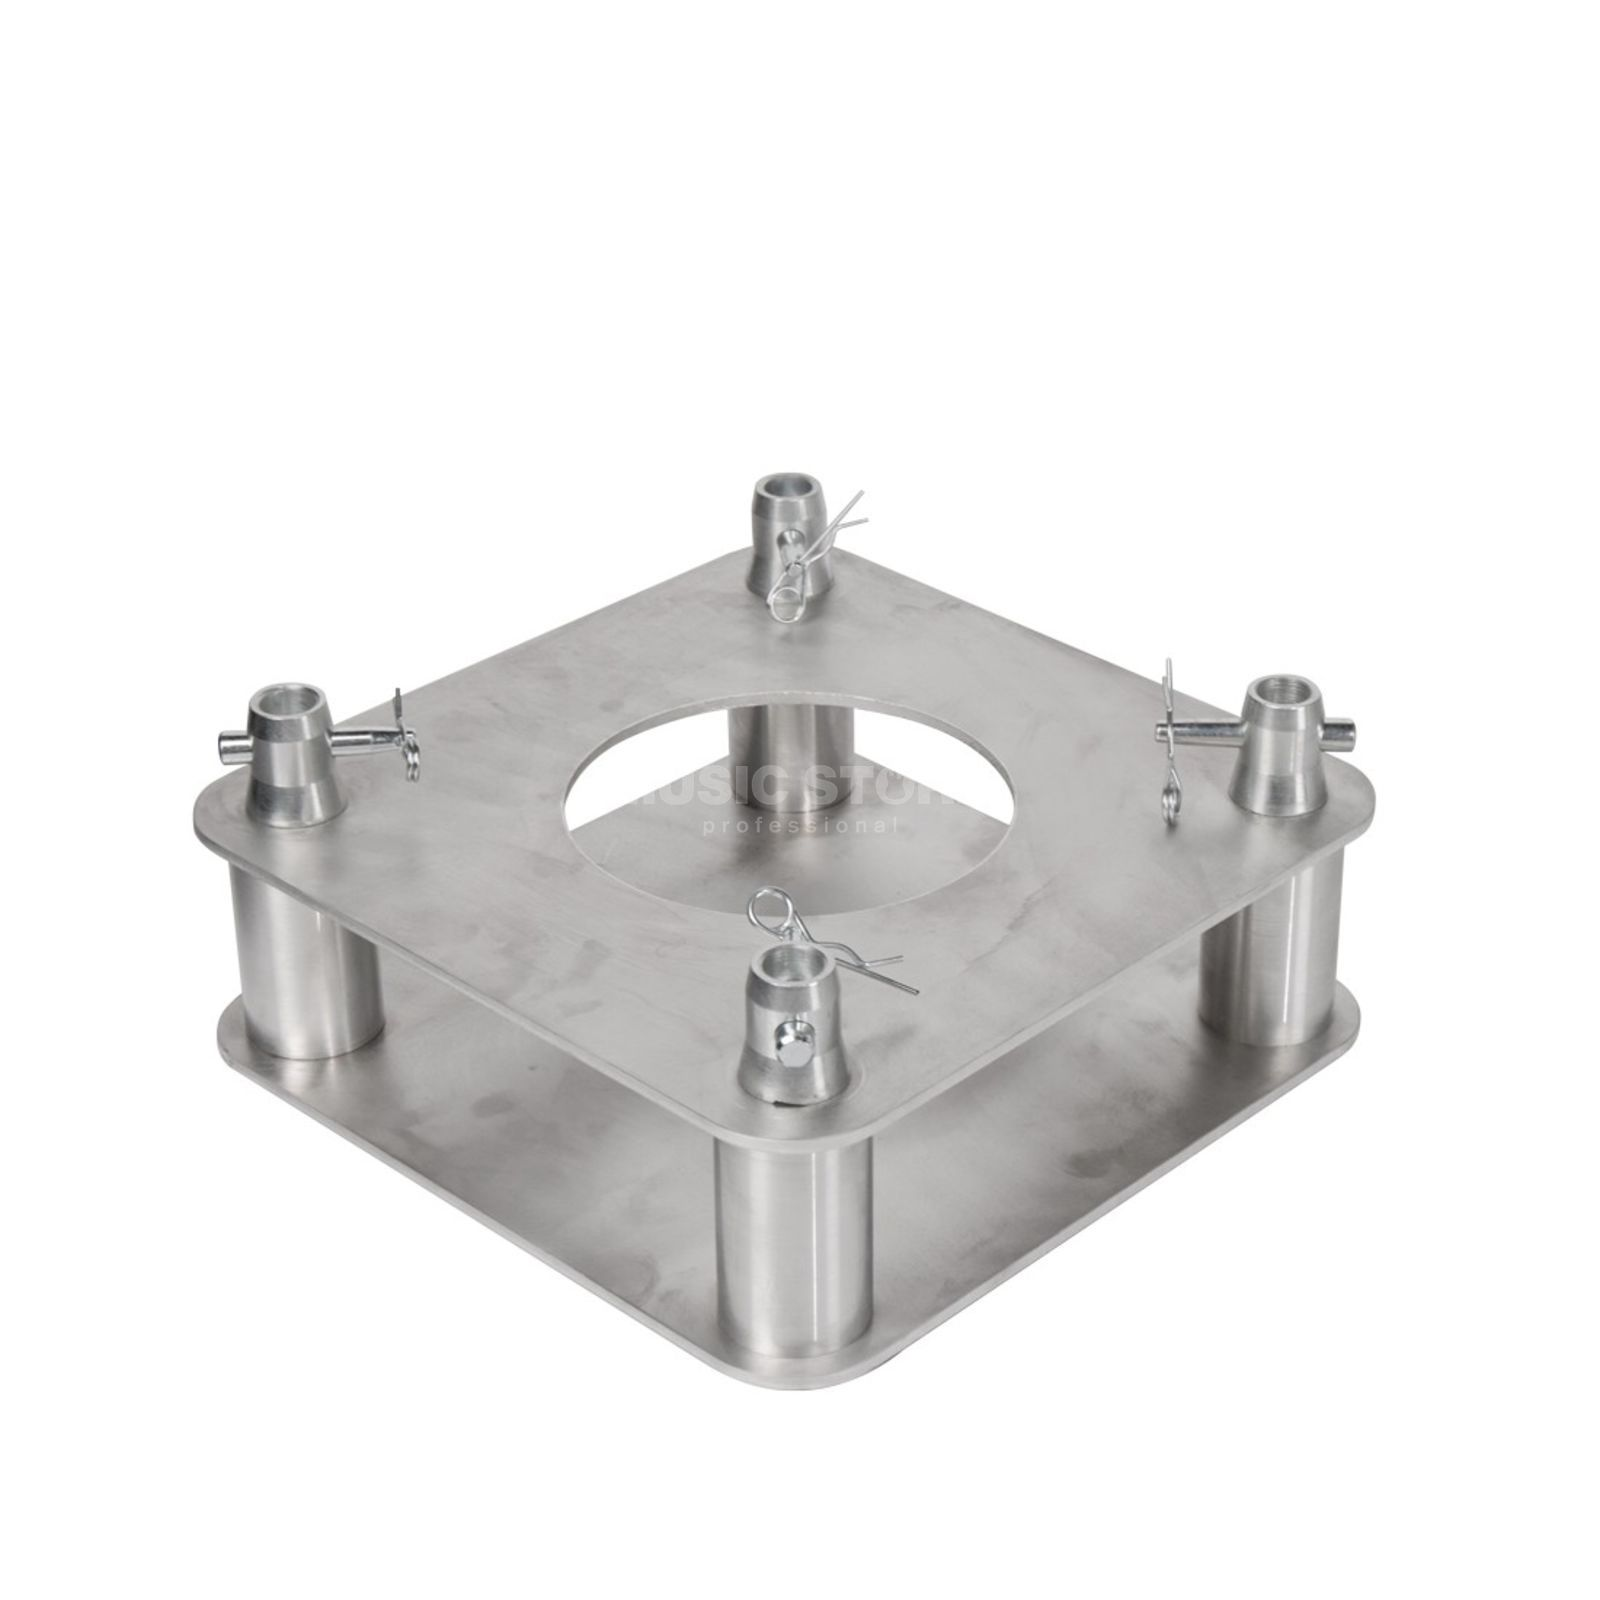 DURATRUSS DT 34-Design Base Plate  Product Image